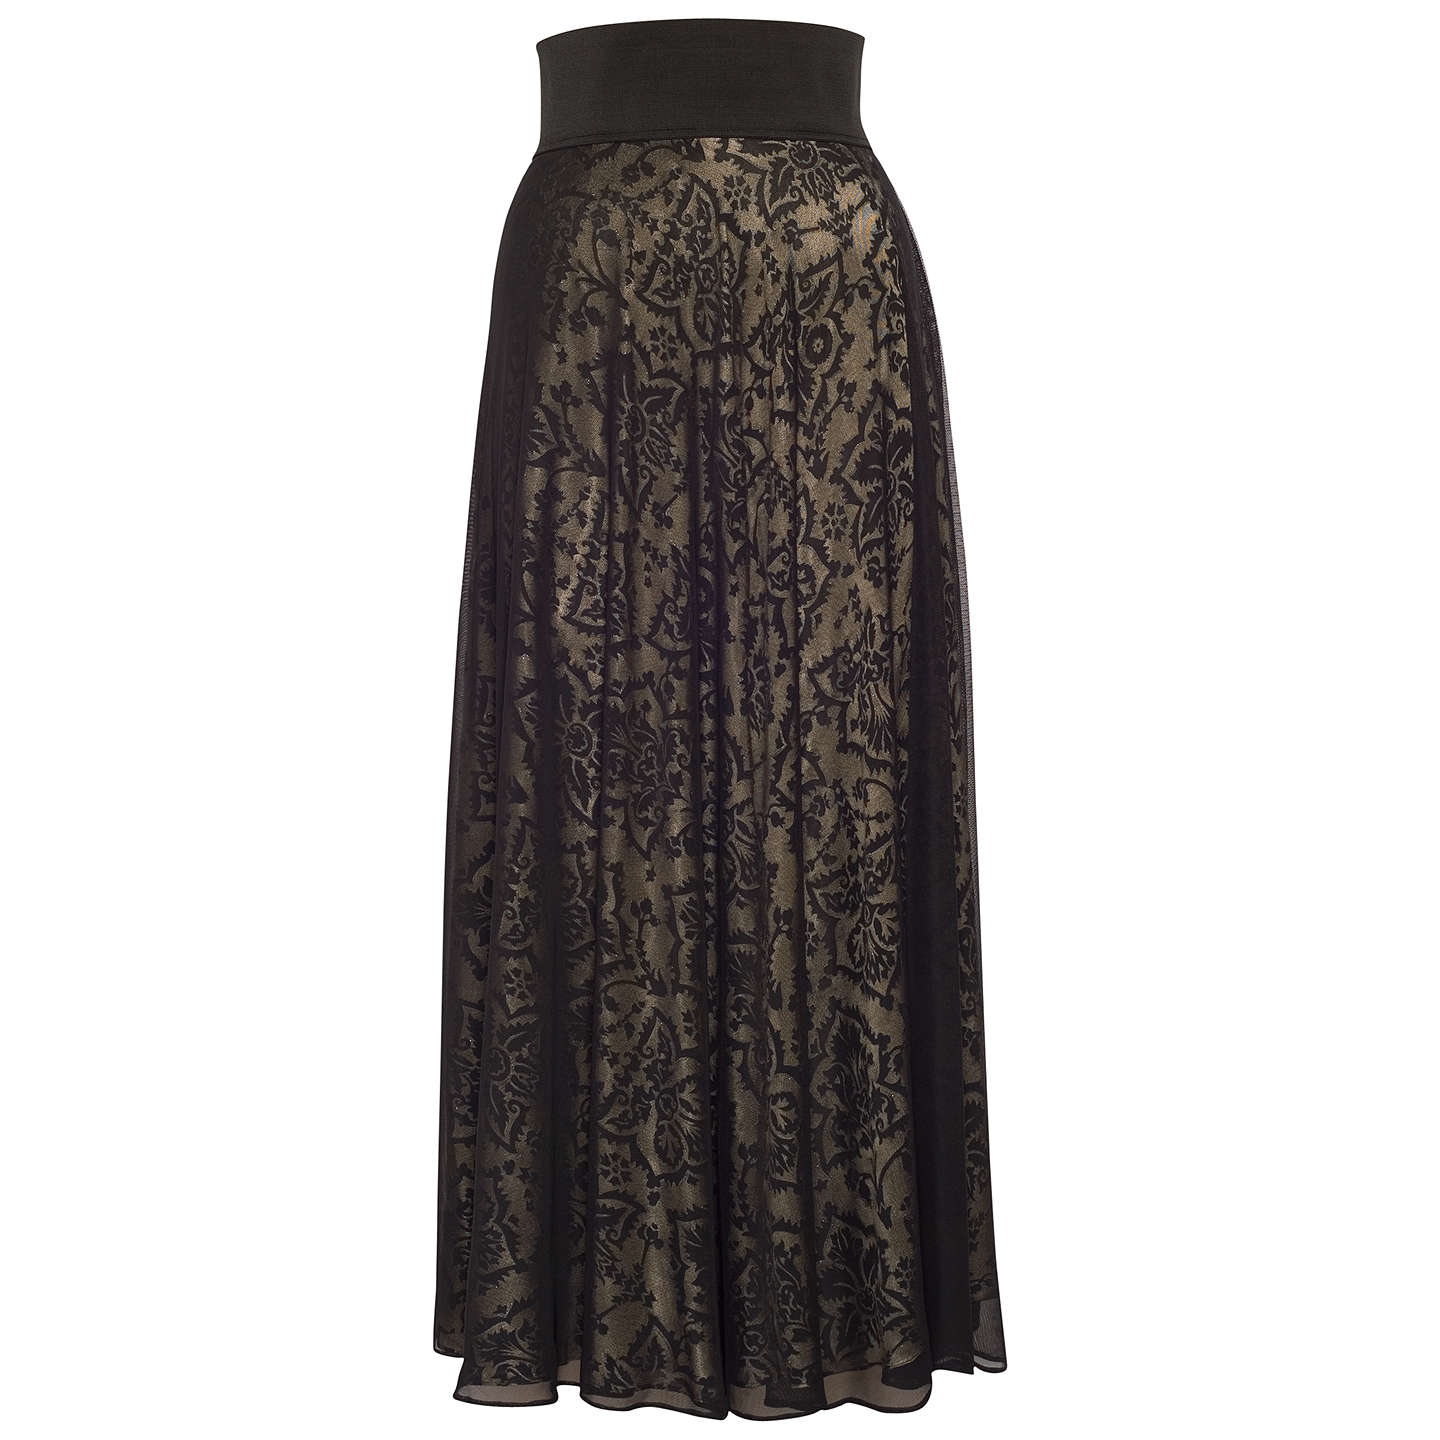 BuyChesca Devoree Mesh Skirt, Black/Gold, 12-14 Online at johnlewis.com